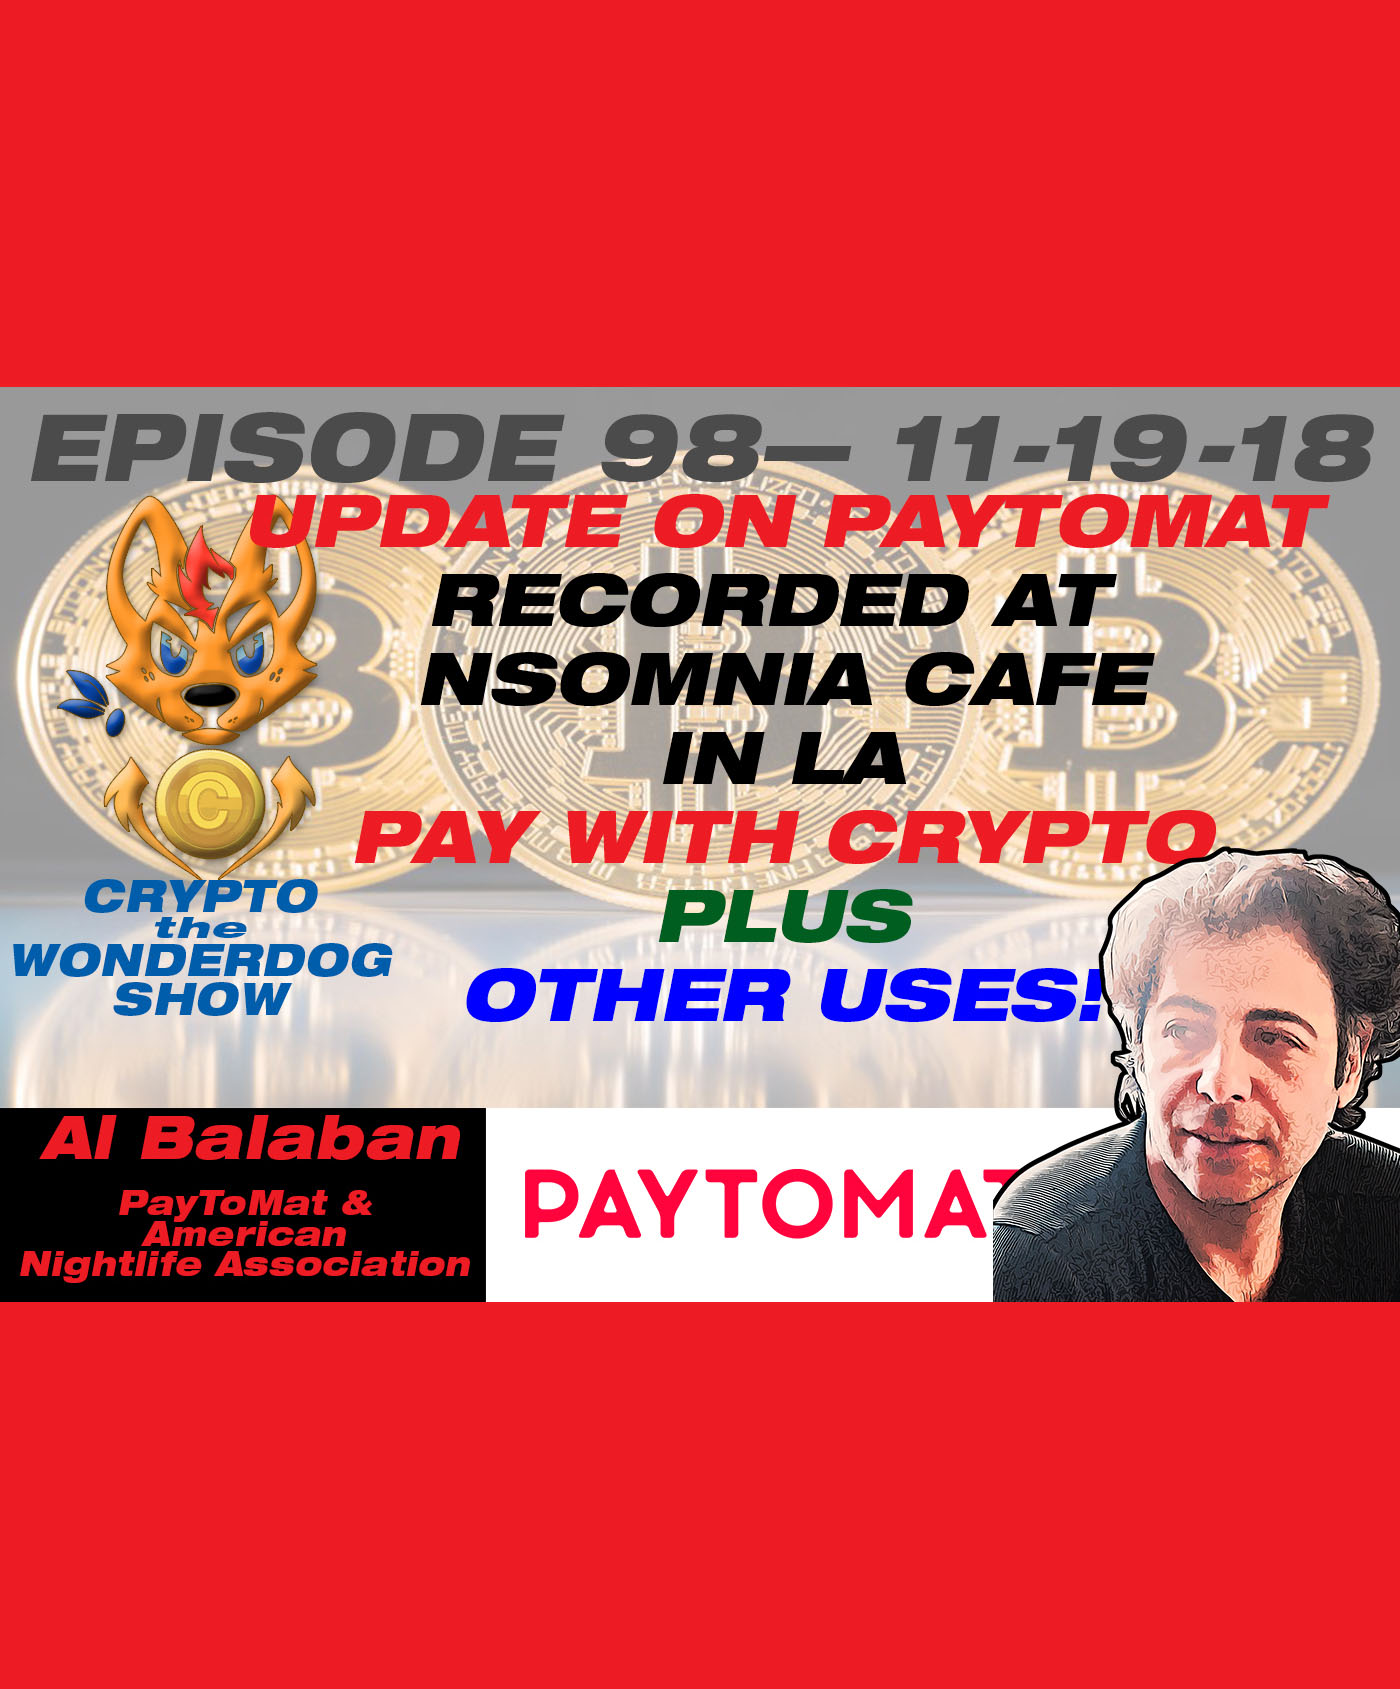 Pay for coffee with BITCOIN NOW! - (Faster Than CASH!) - PayToMat.com